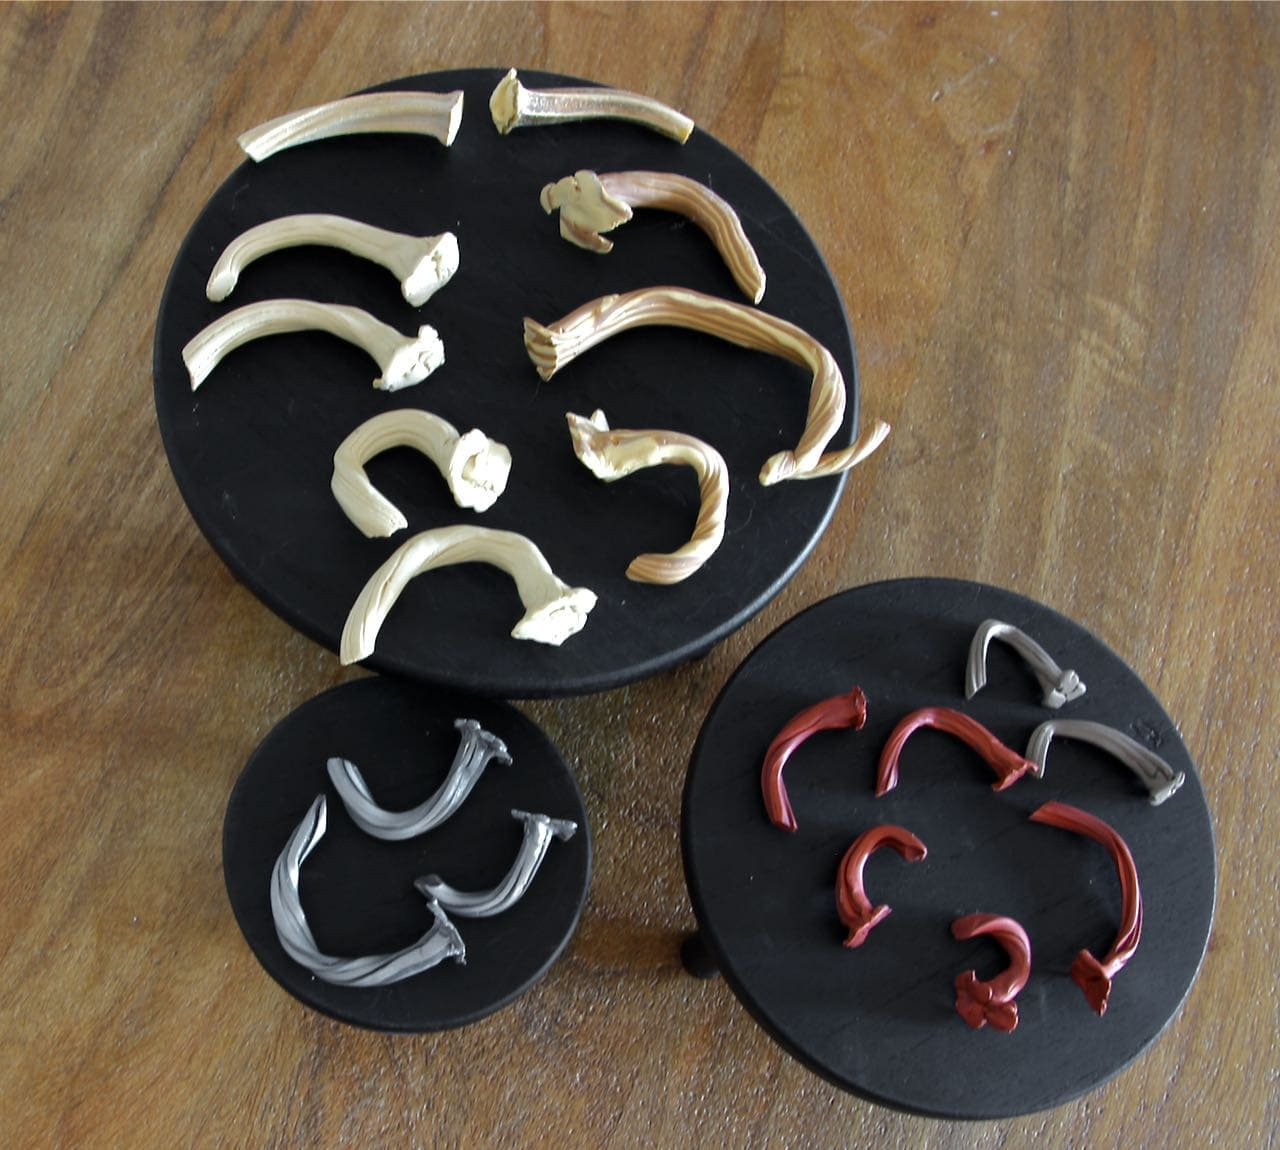 Polymer pumpkin stems arranged on three risers by color and size